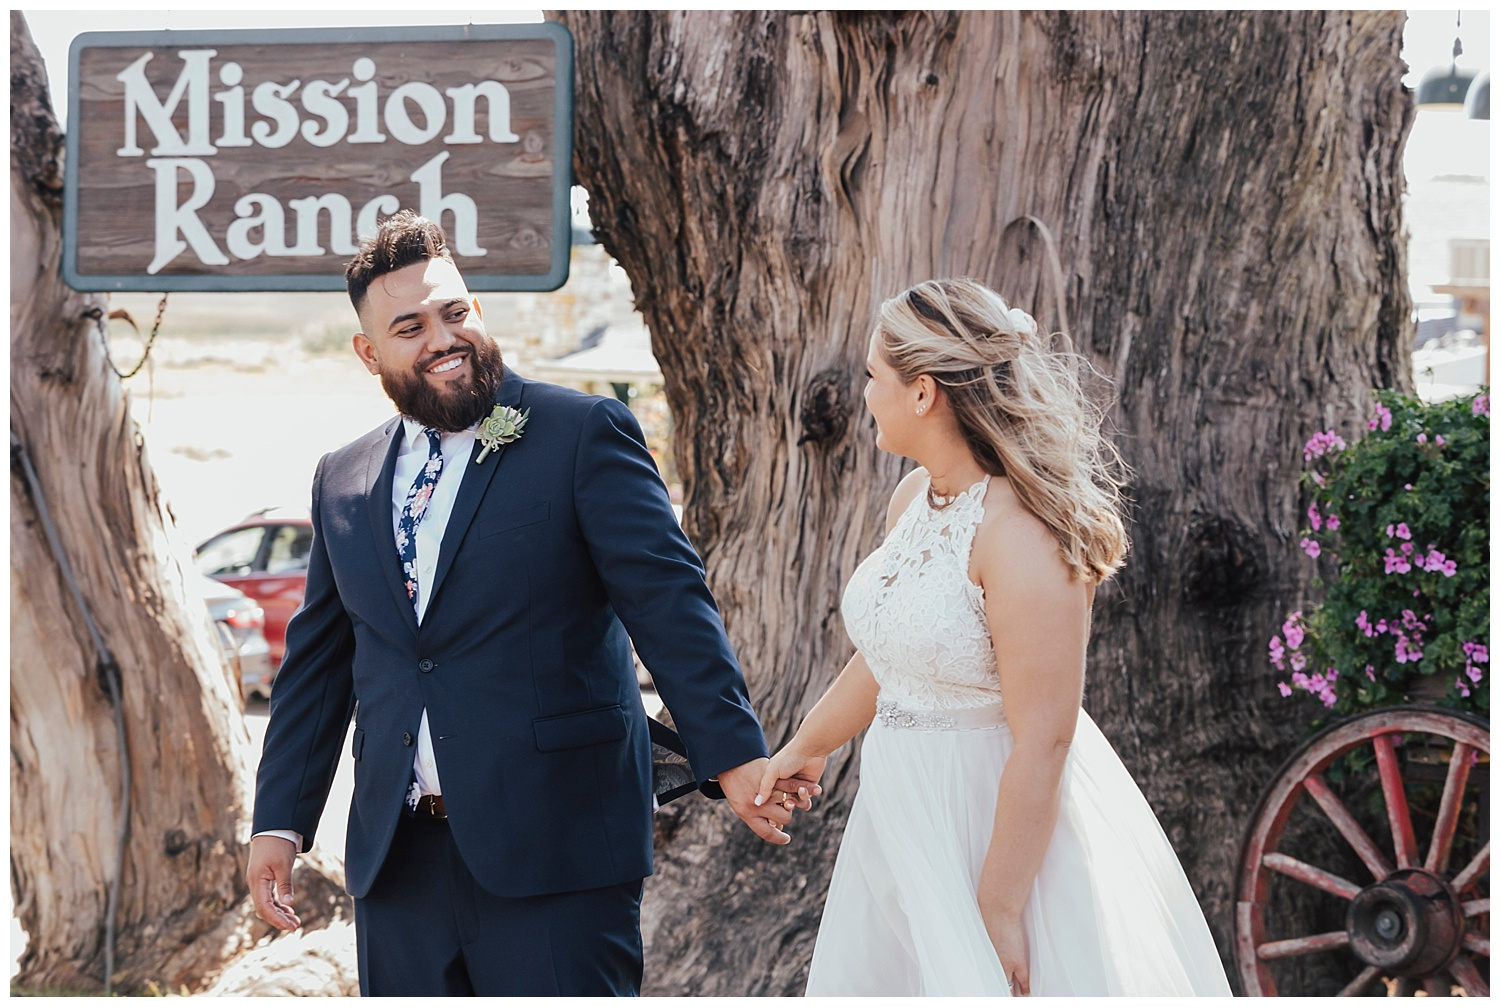 just-married-summer-wedding-mission-ranch-carol-oliva-photography.jpg